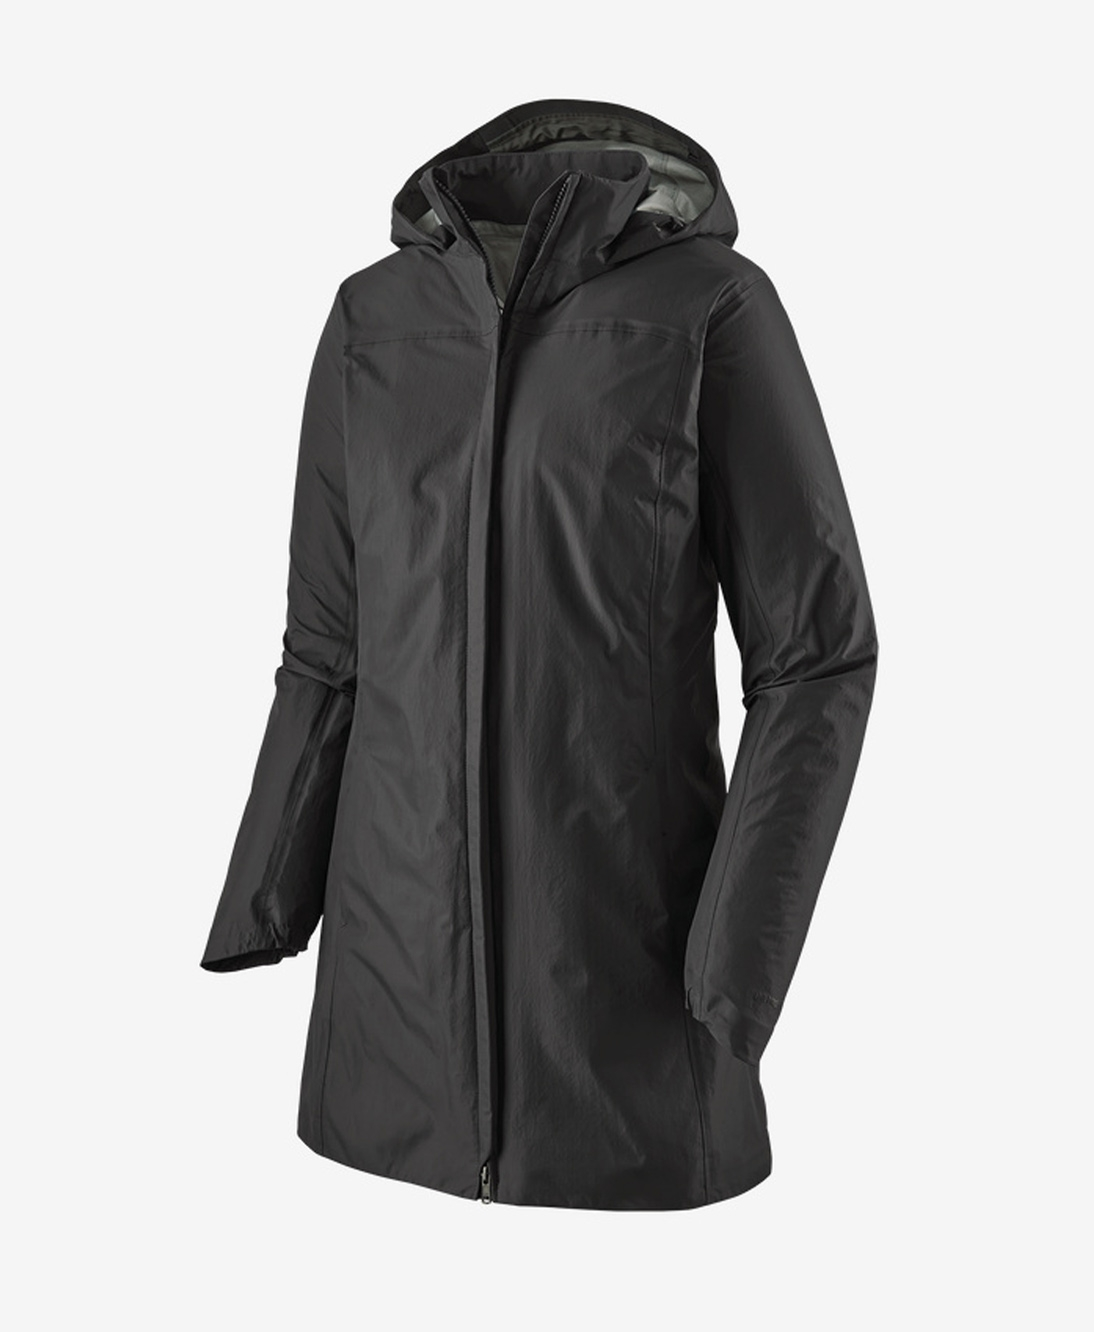 W's Torrentshell 3L City Coat